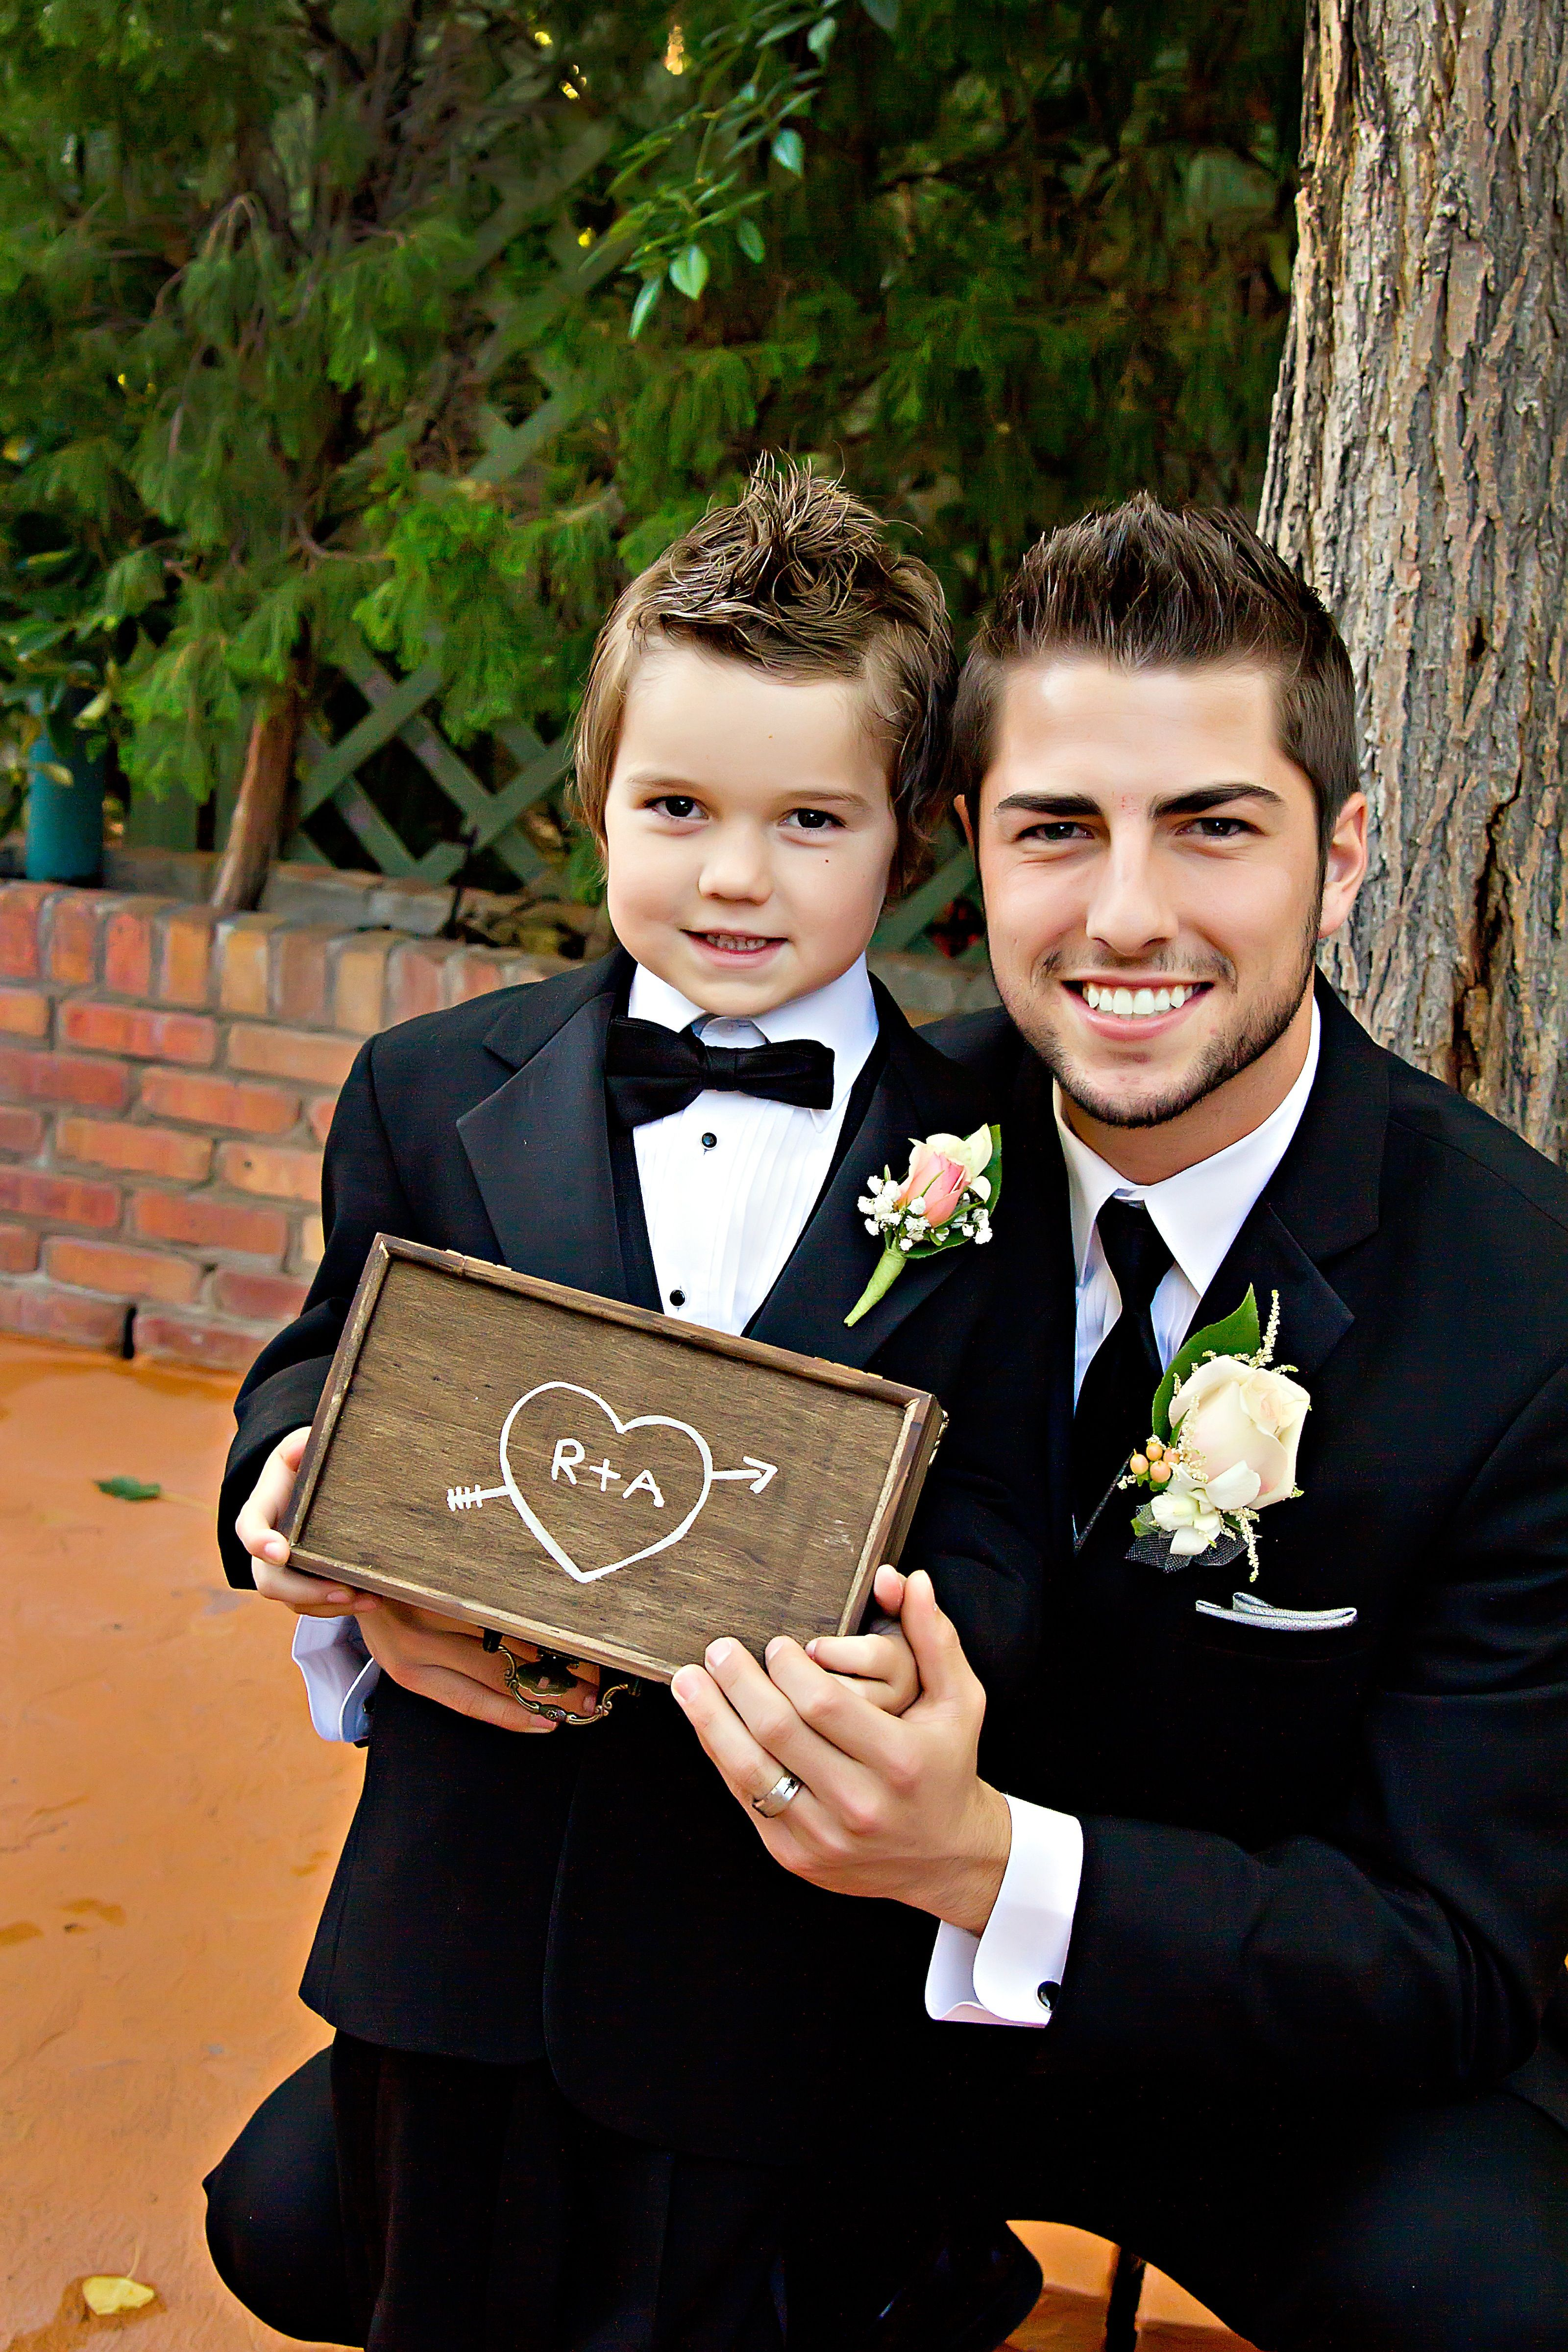 Groom and the ring bearer wedding wedding party